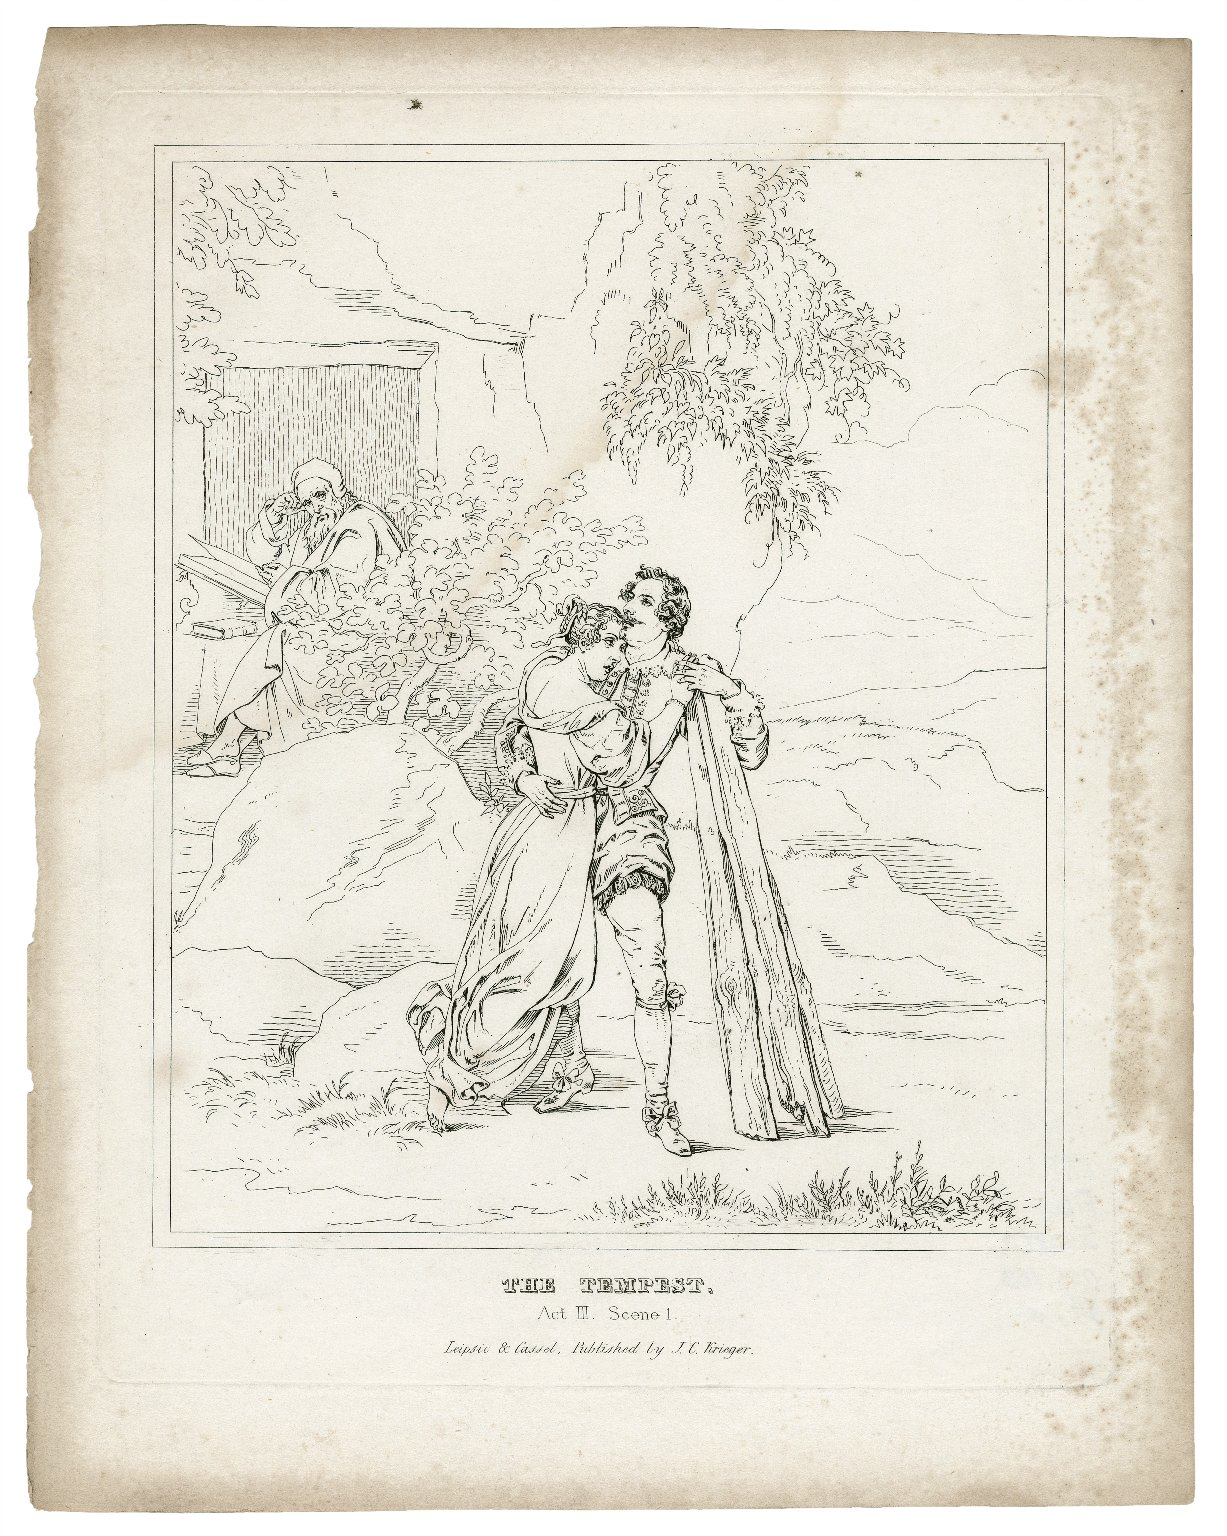 The tempest [a series of engravings] [graphic].